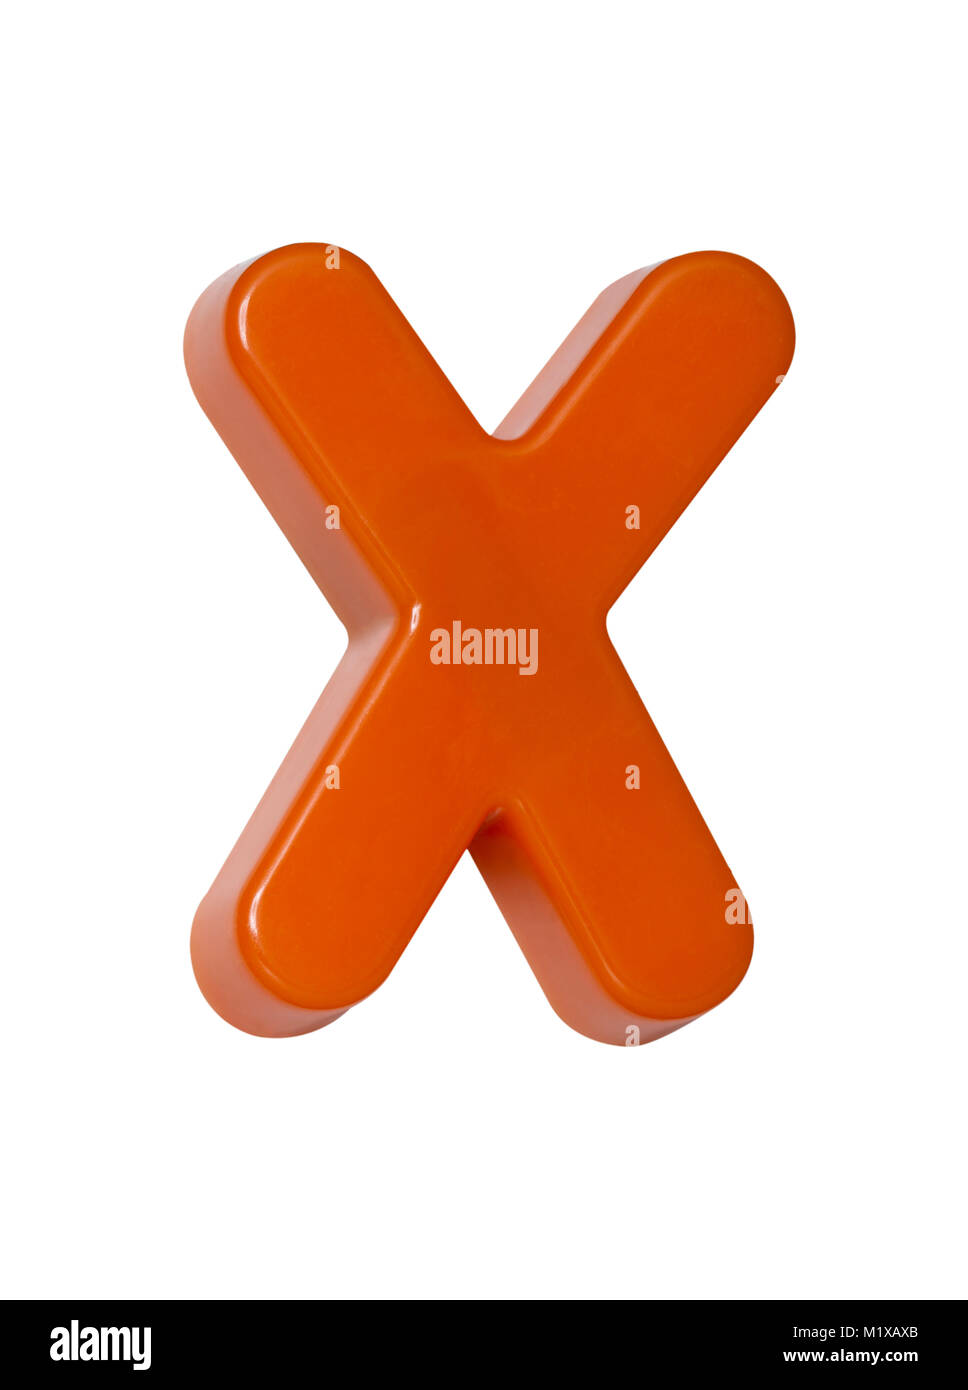 A cut out shot of an orange plastic letter 'X' - Stock Image